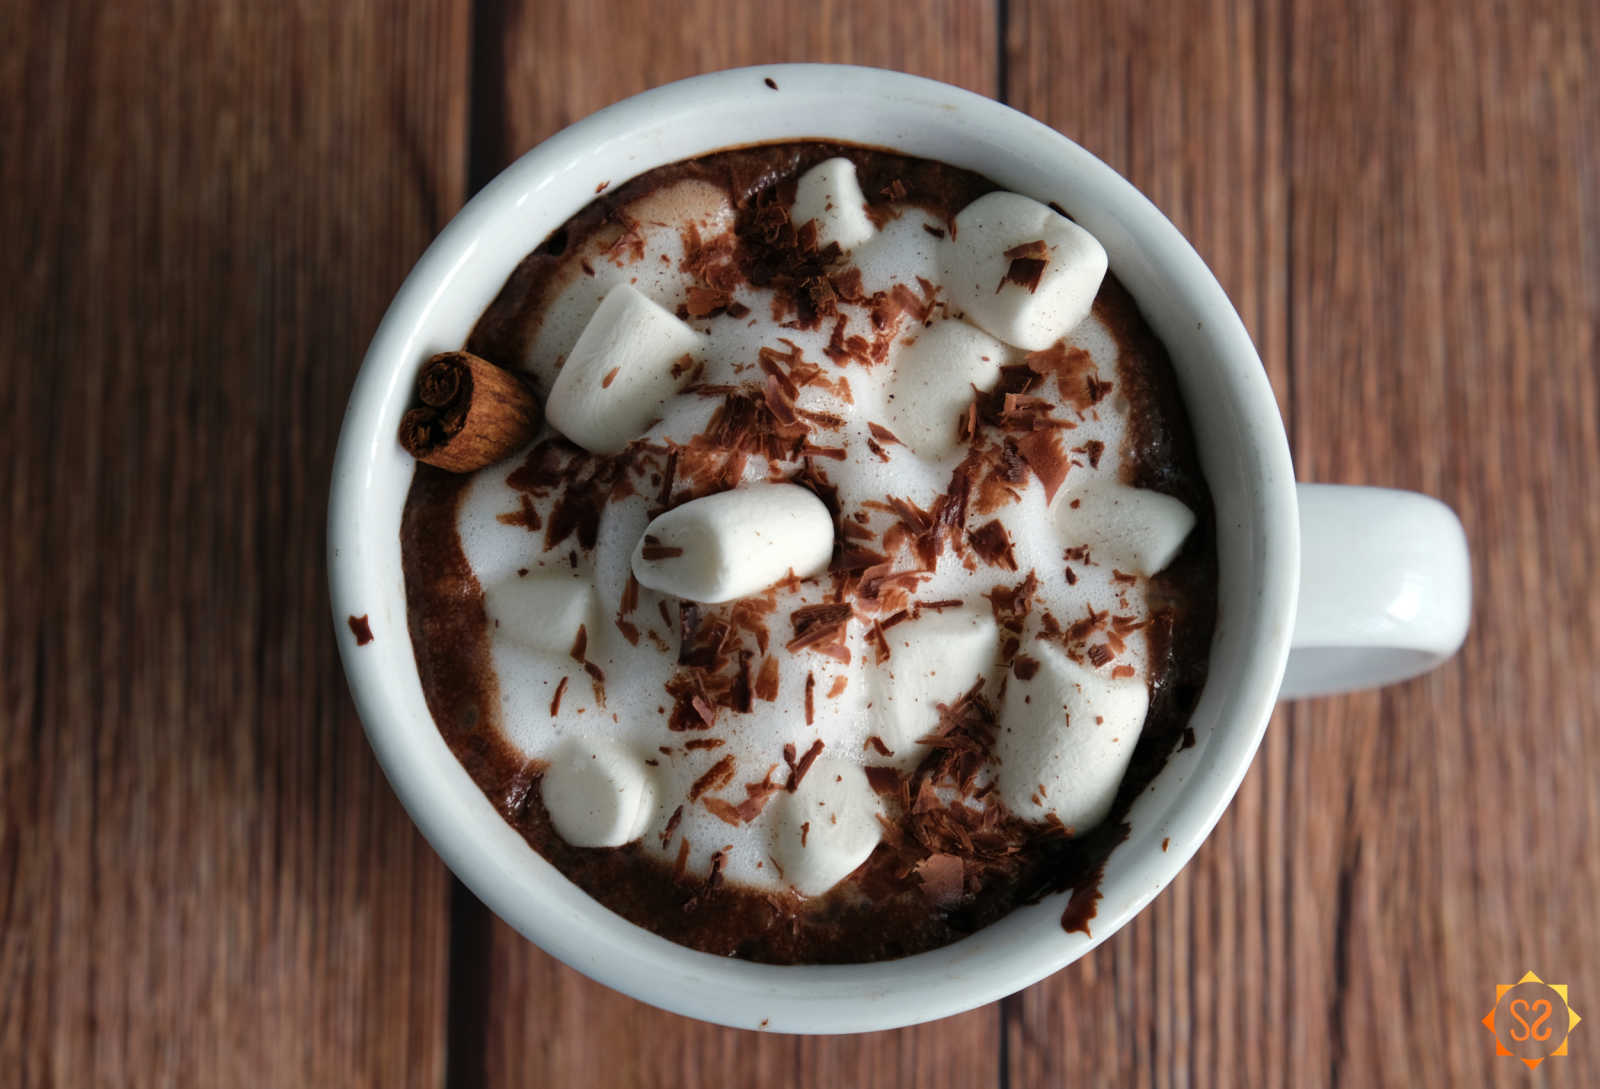 Foamy hot cacao with maca root topped with marshmallows, chocolate, and a cinnamon stick